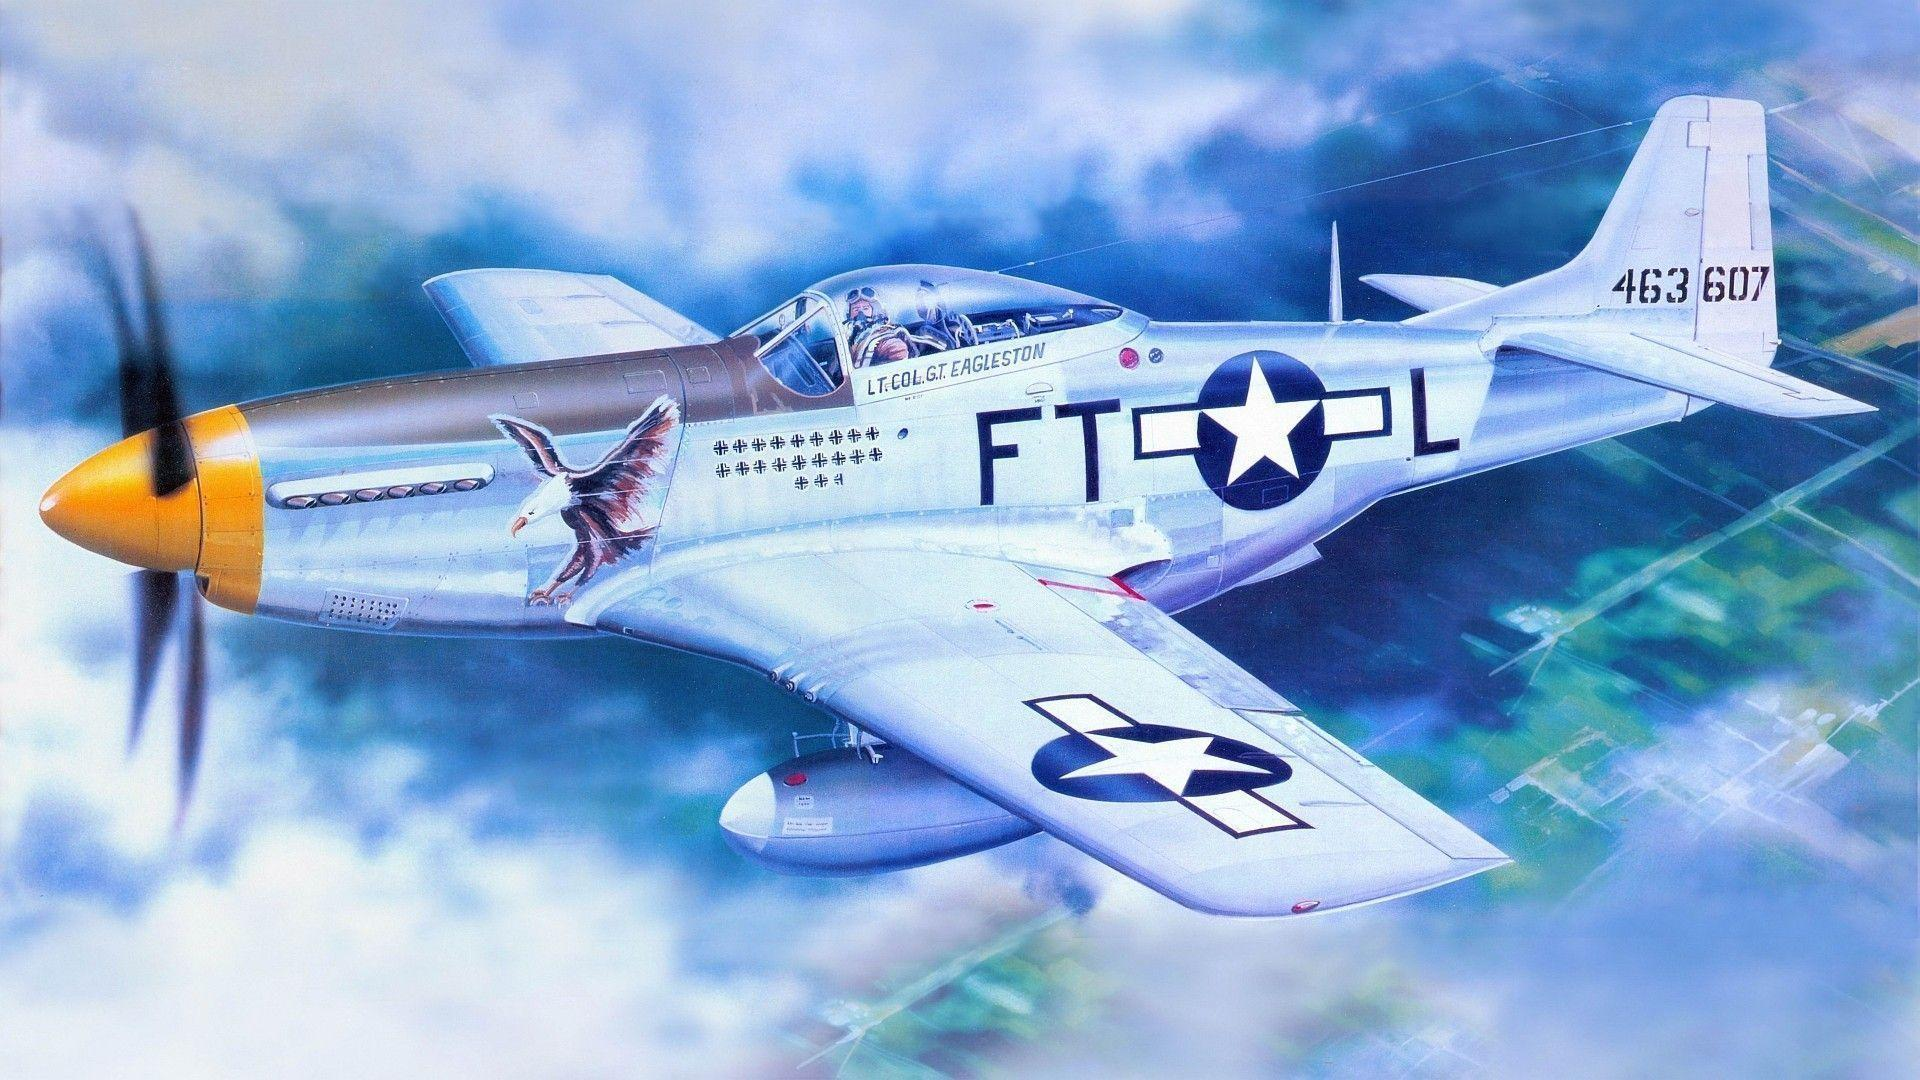 Download P 51 Mustang Wallpapers 1920X1080 Backgrounds 1 HD